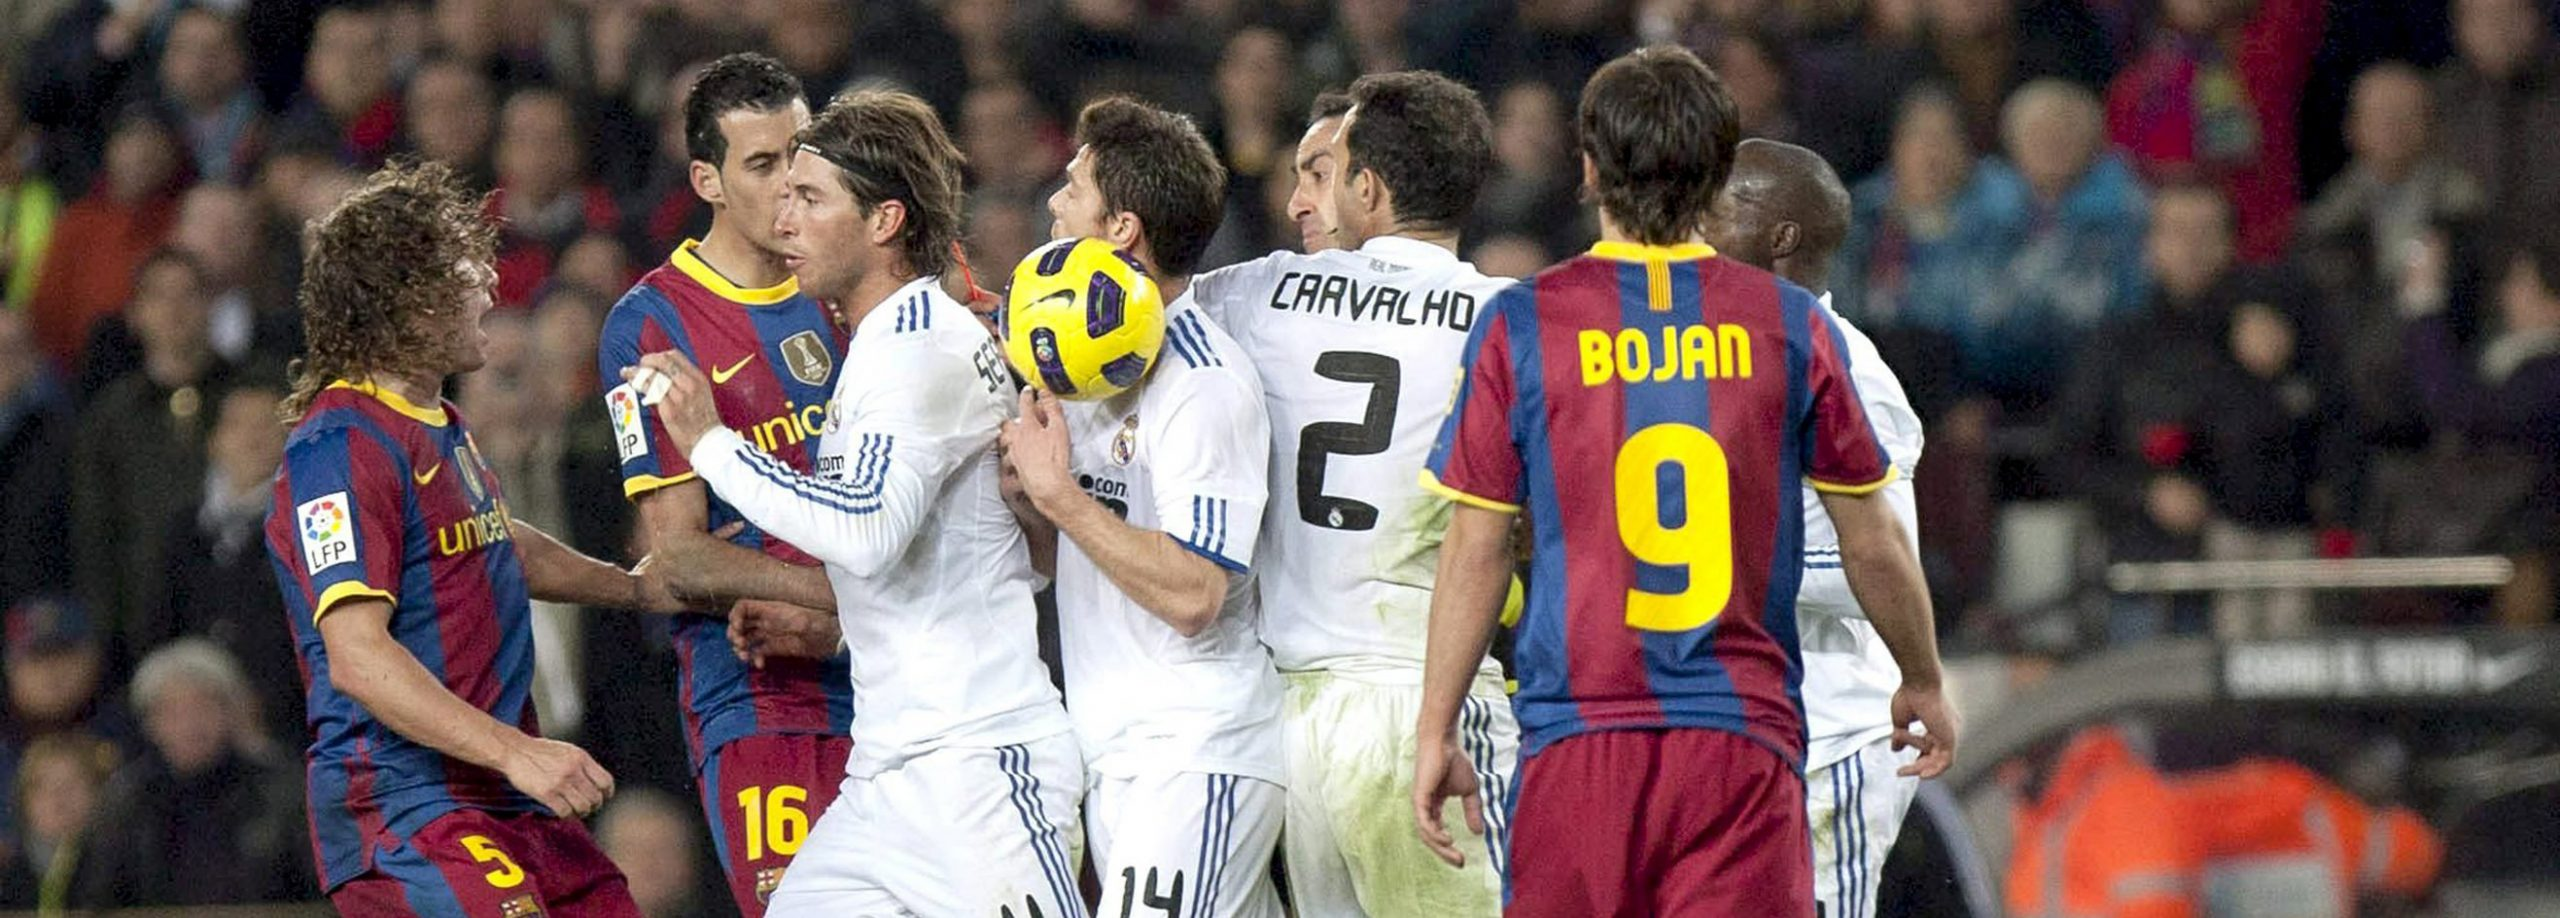 An old image of the Clasico between Barça and Real as we know it - Place your bets on betFIRST